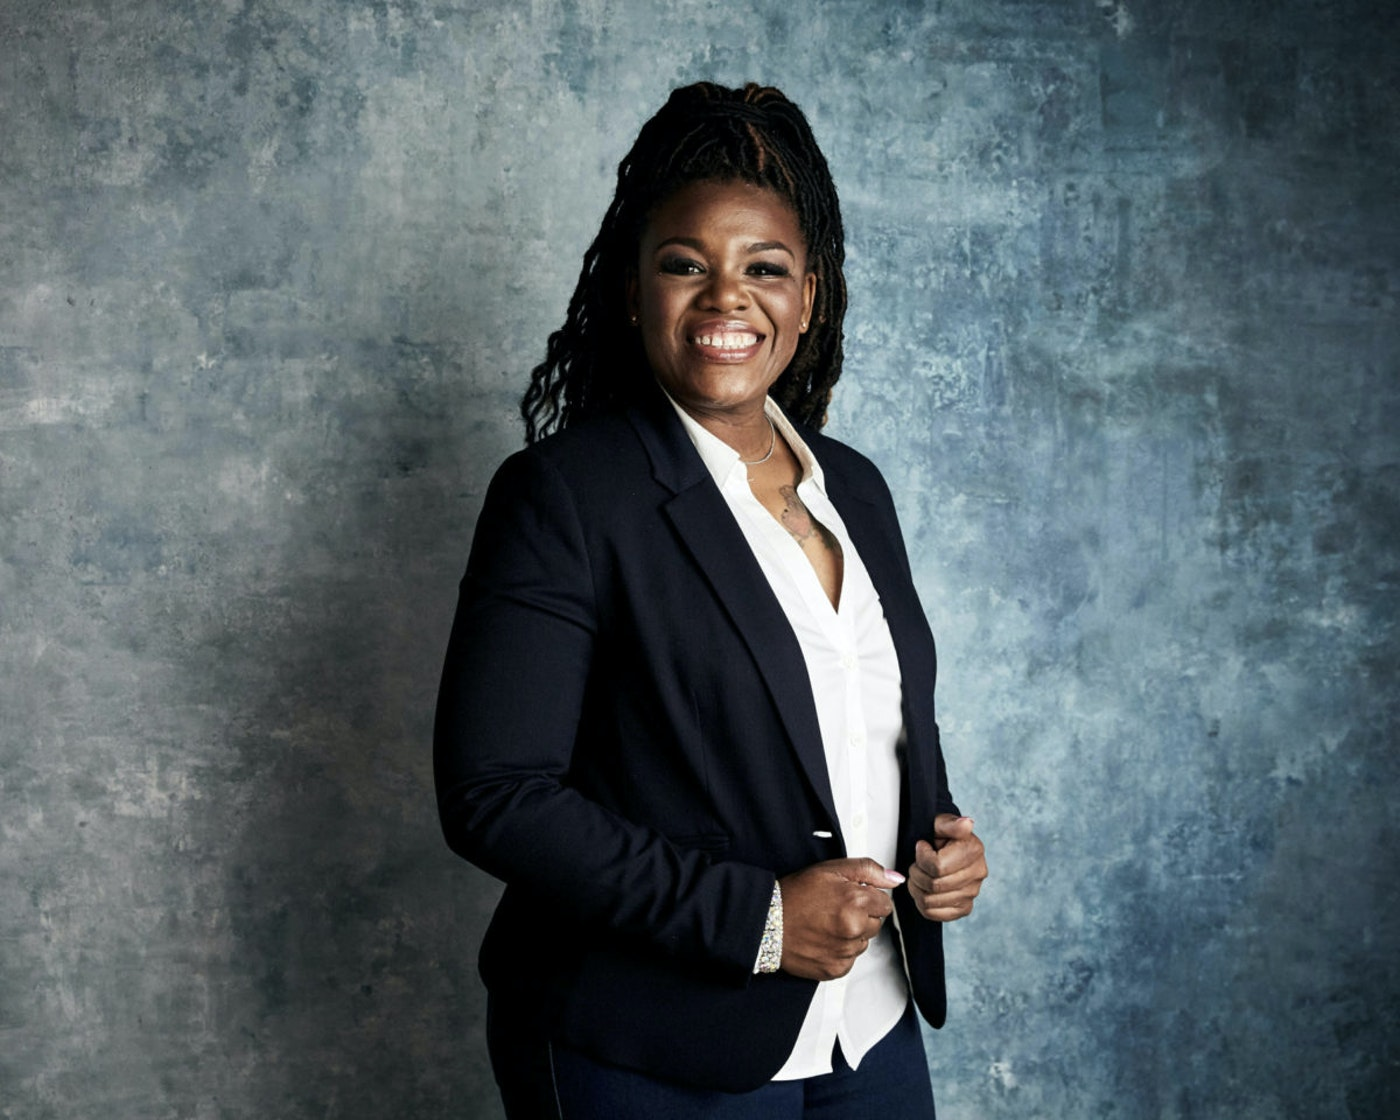 """In this Jan. 27, 2019, file photo Cori Bush poses for a portrait to promote the film """"Knock Down the House"""" at the Salesforce Music Lodge during the Sundance Film Festival in Park City, Utah. (Photo by Taylor Jewell/Invision/AP, File)"""